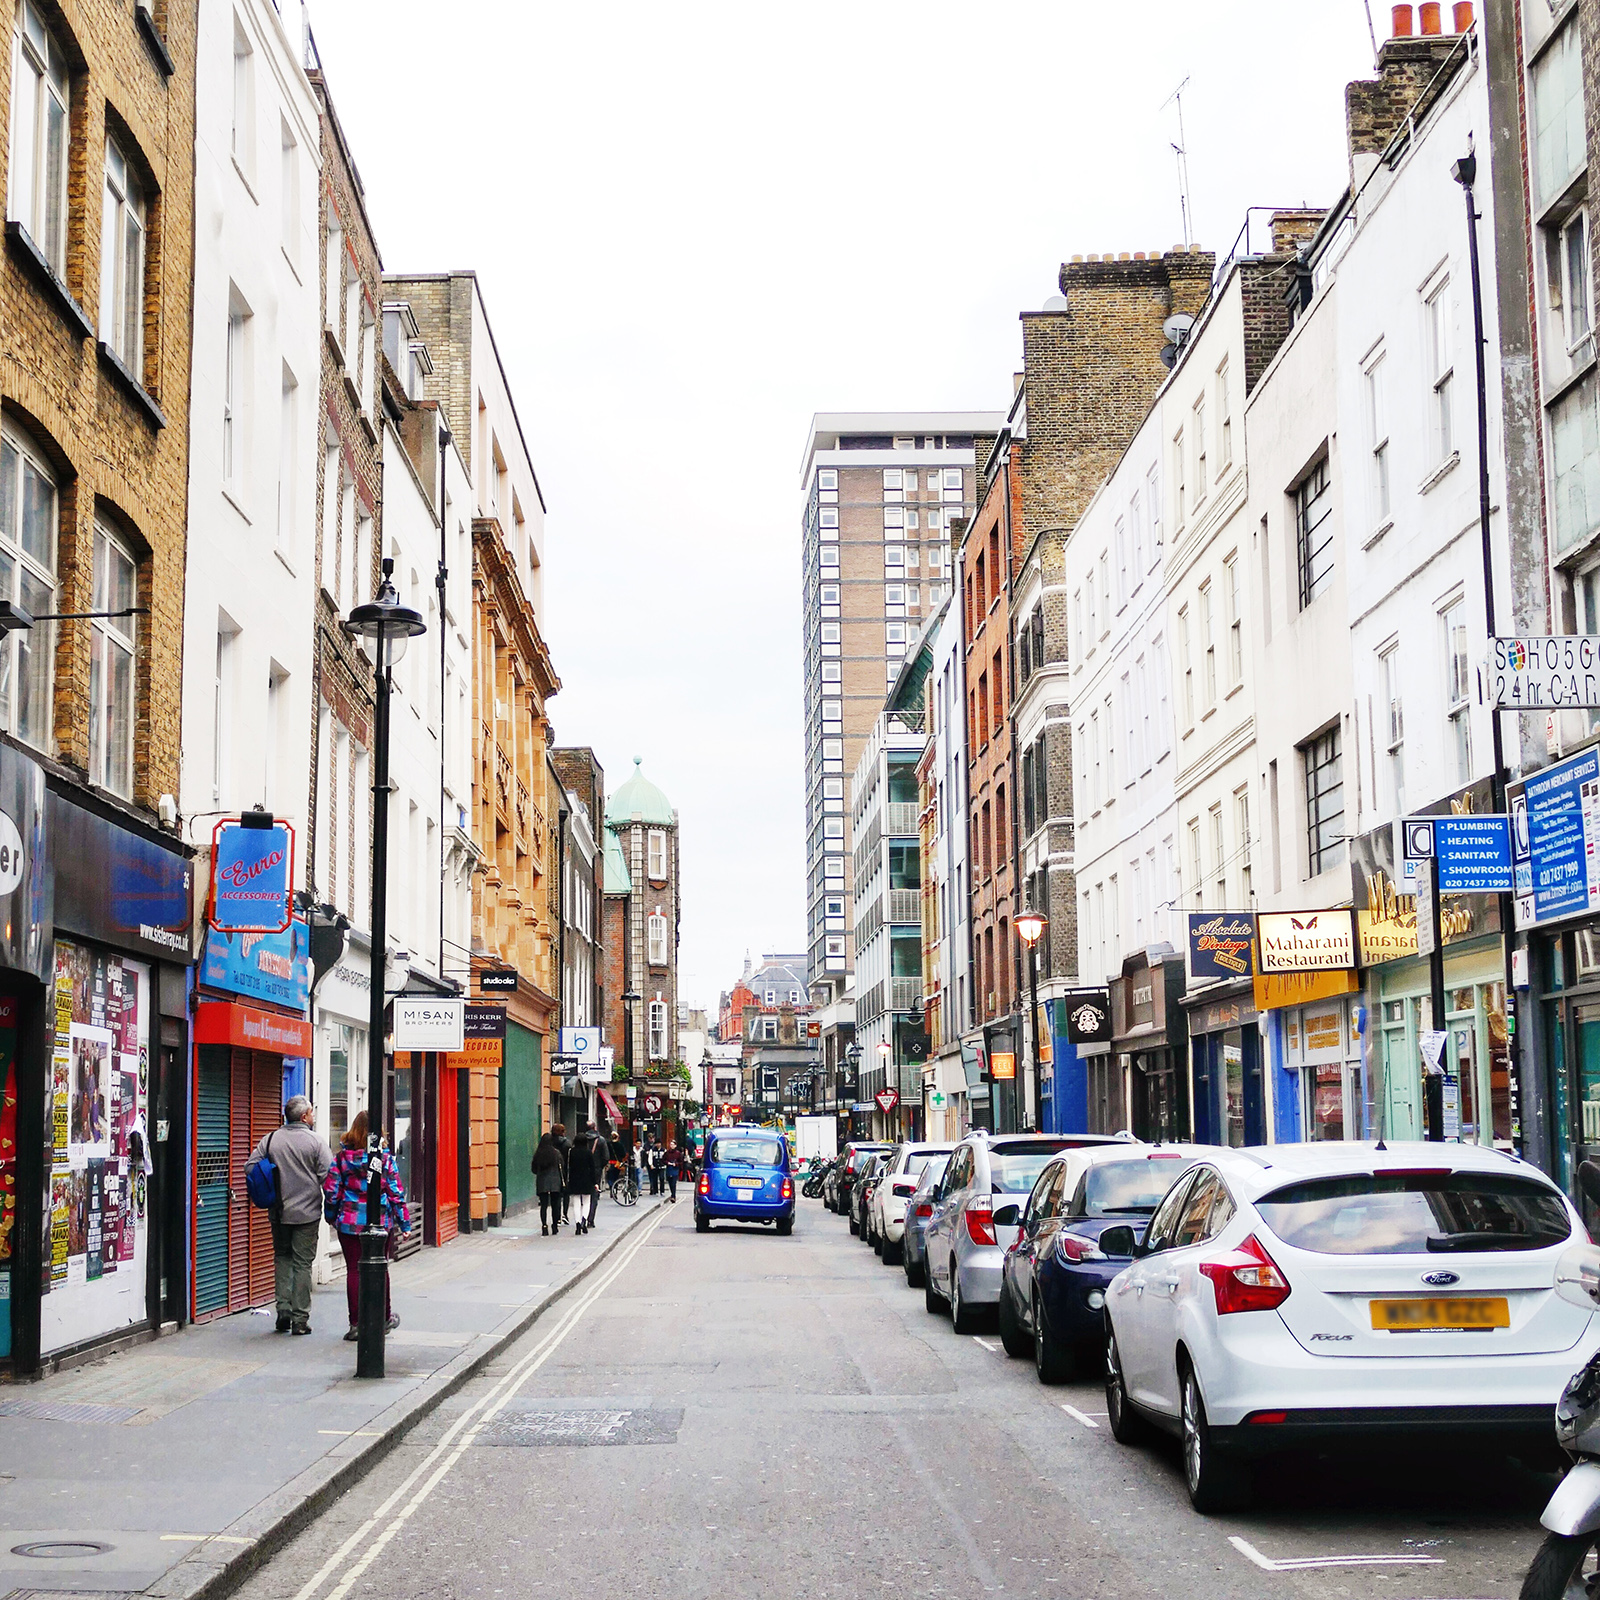 Berwick St. Photo by Hyphen